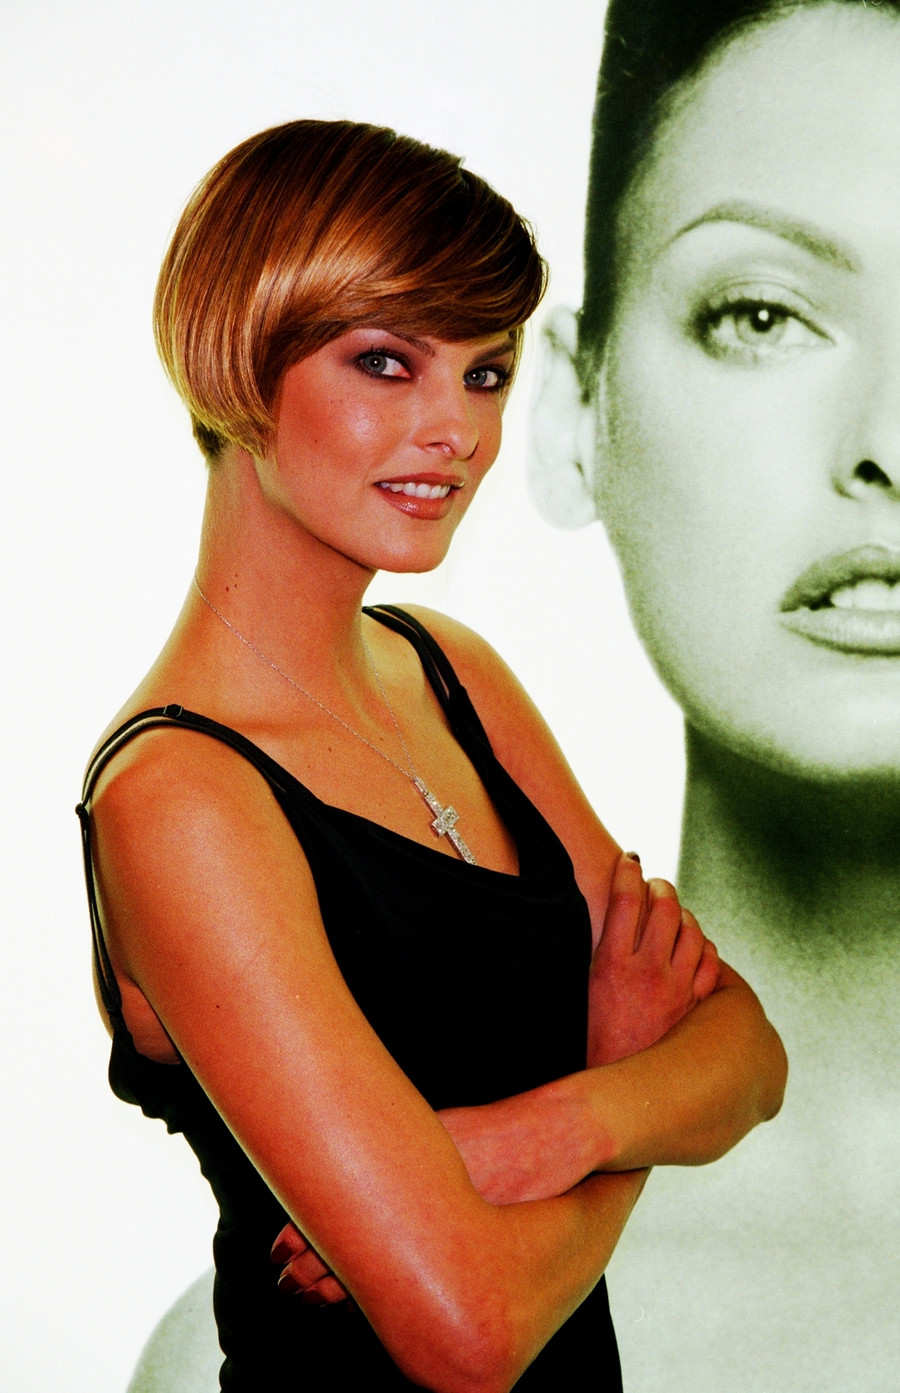 Linda Evangelista / Time & Life Pictures / GettyImages